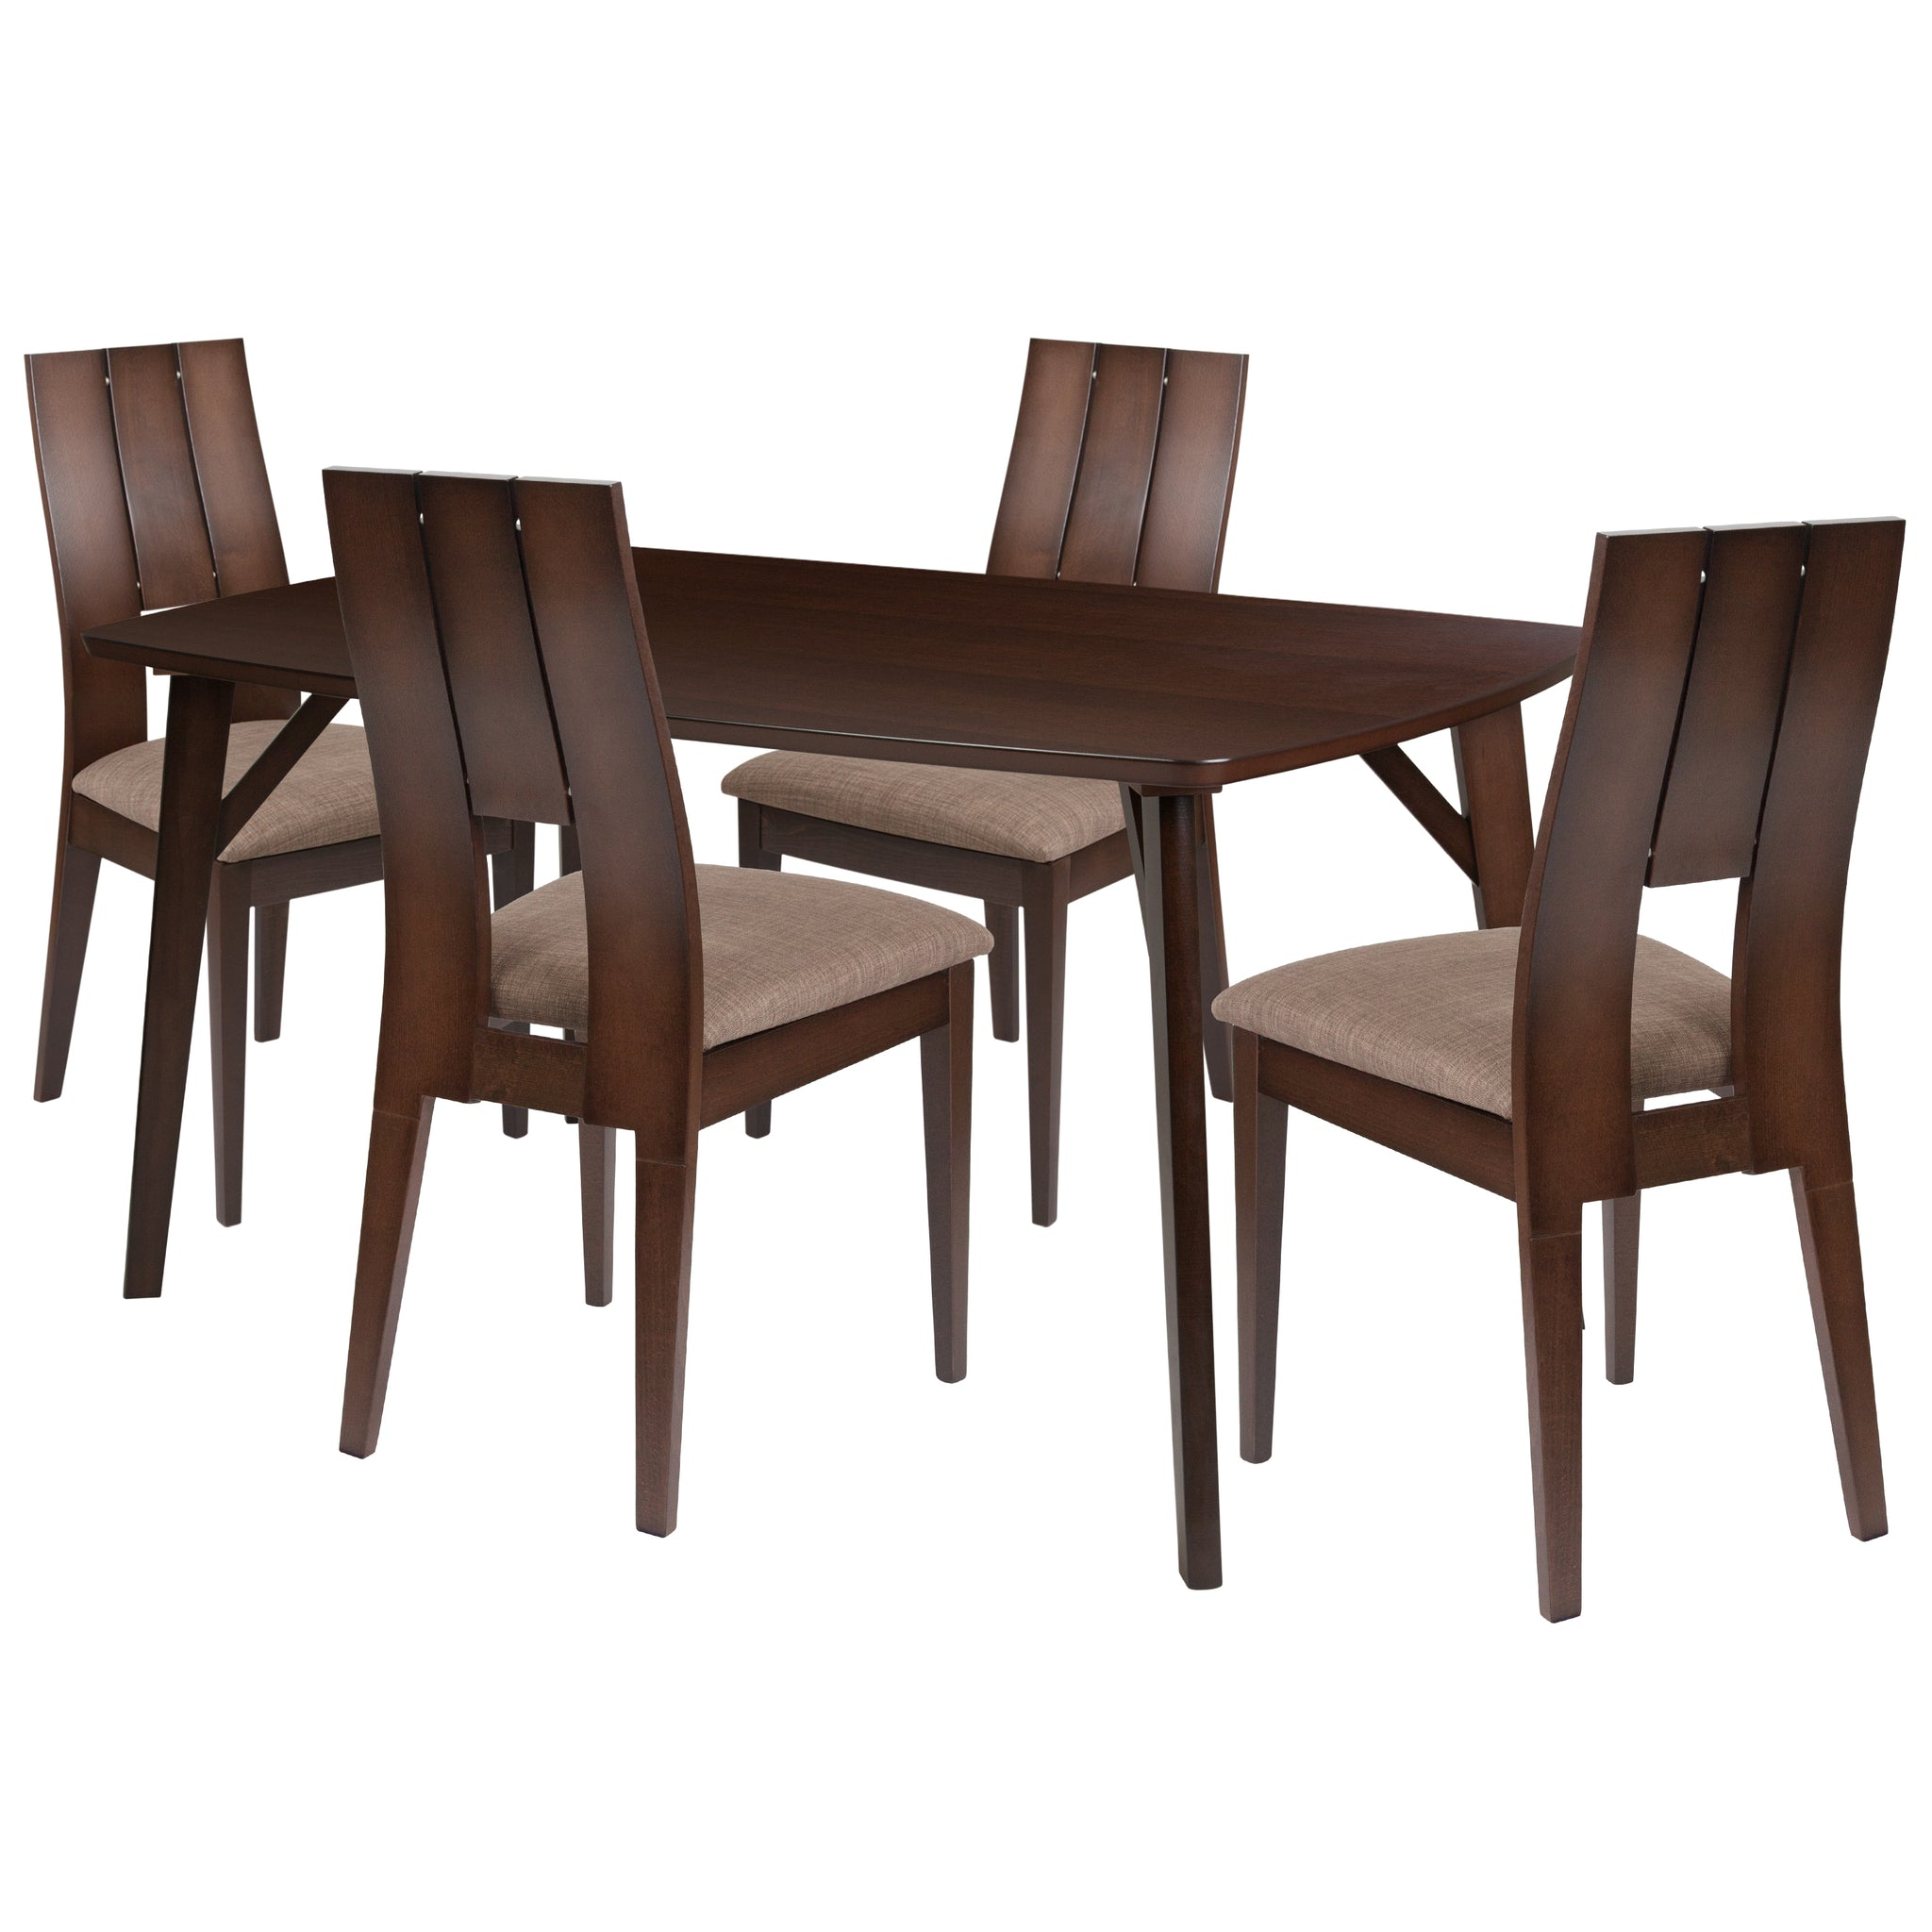 Anderson 5 Piece Espresso Wood Dining Table Set with Curved Slat Keyhole Back Wood Dining Chairs - Padded Seats